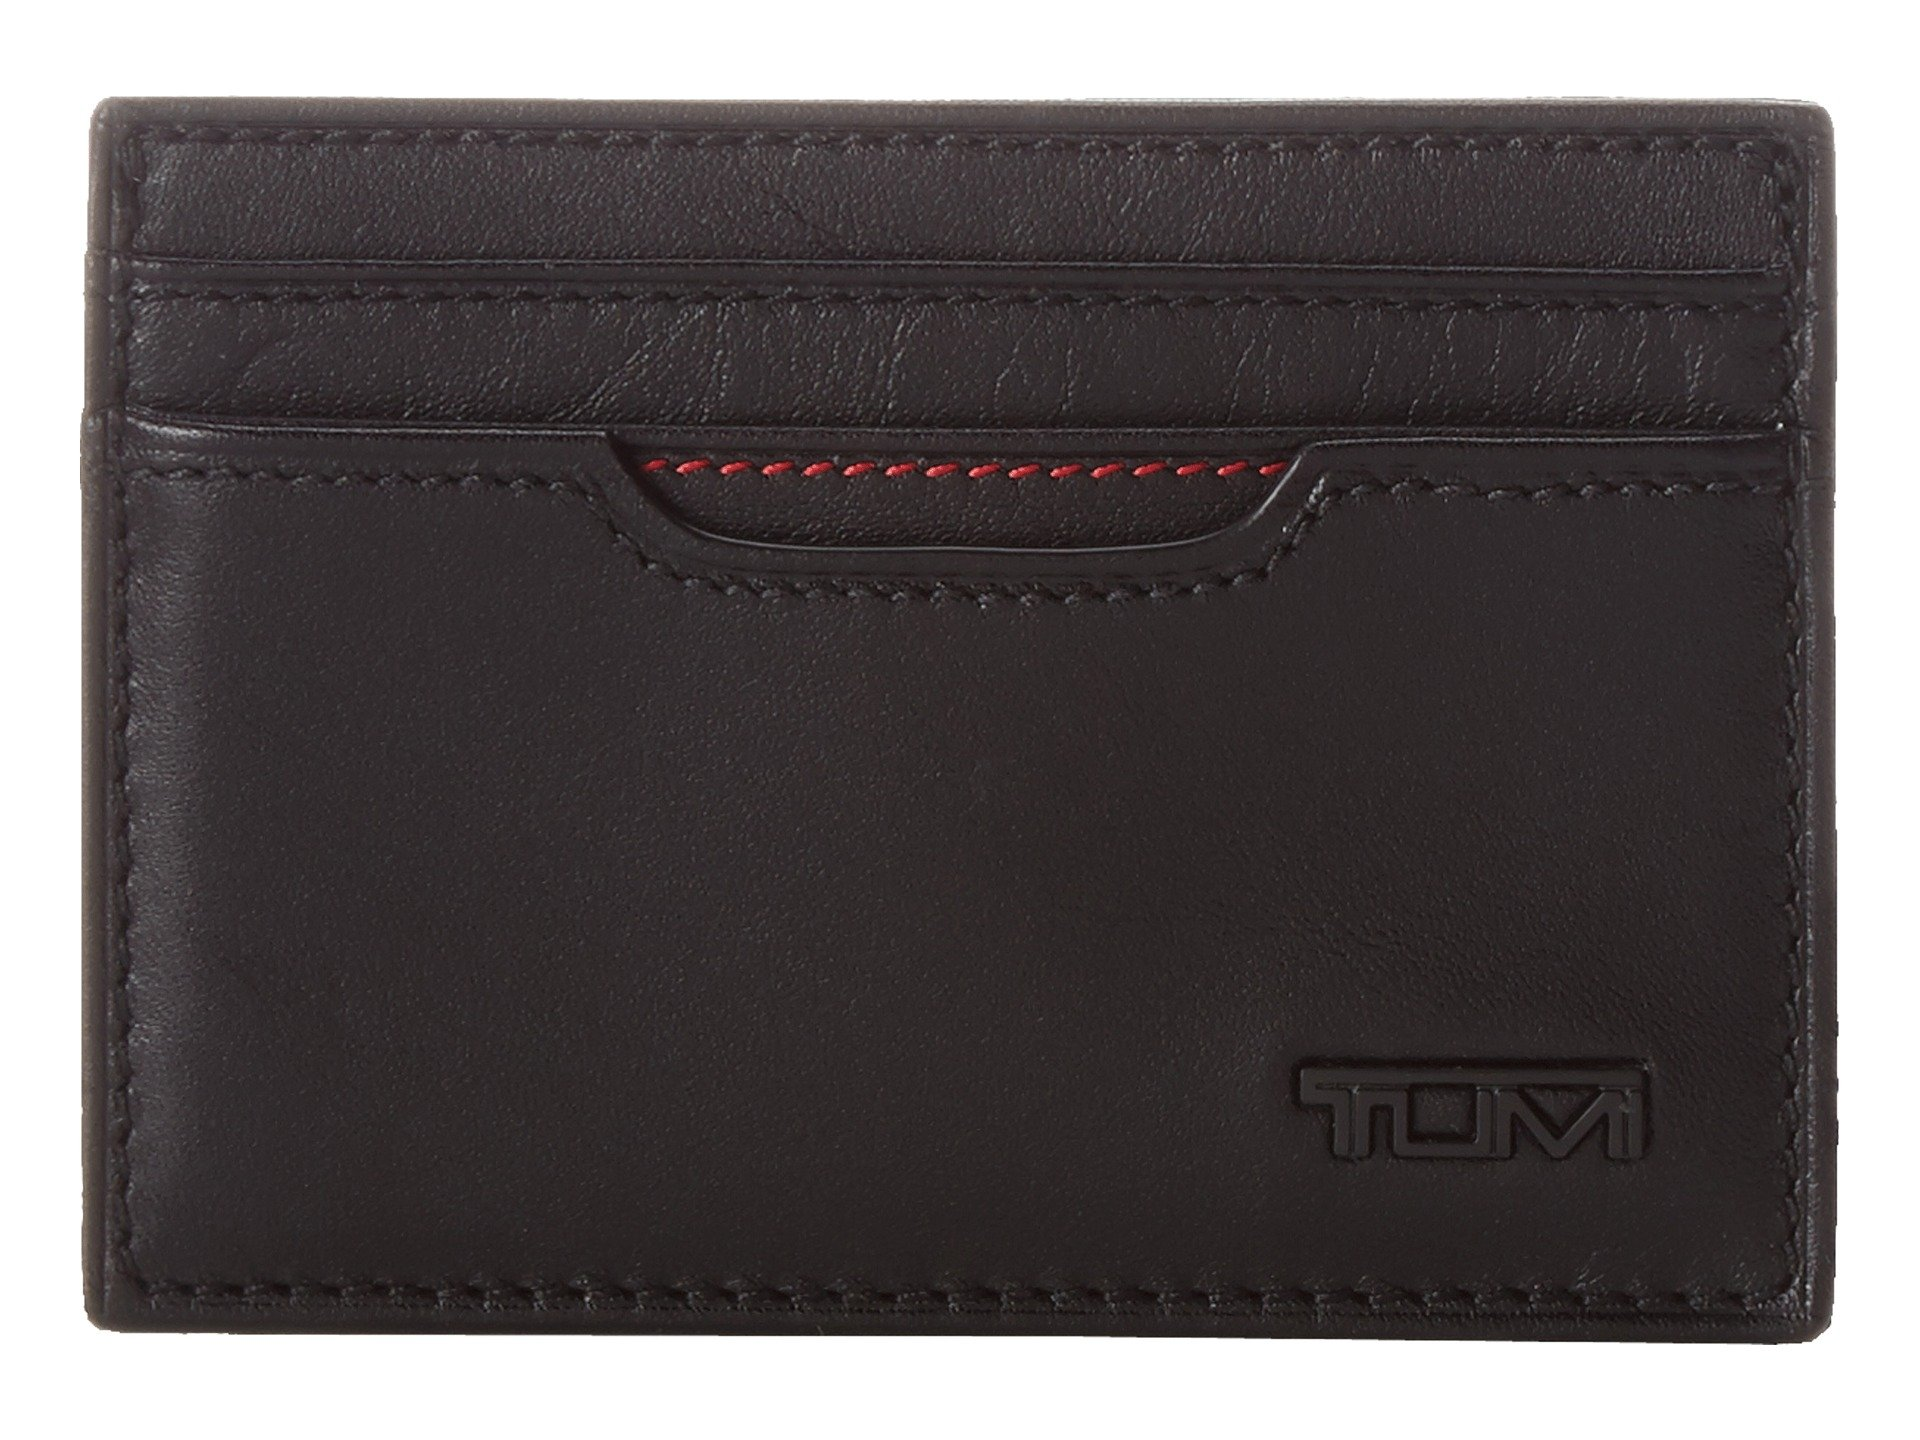 Coin & Card Cases | Shipped Free at Zappos